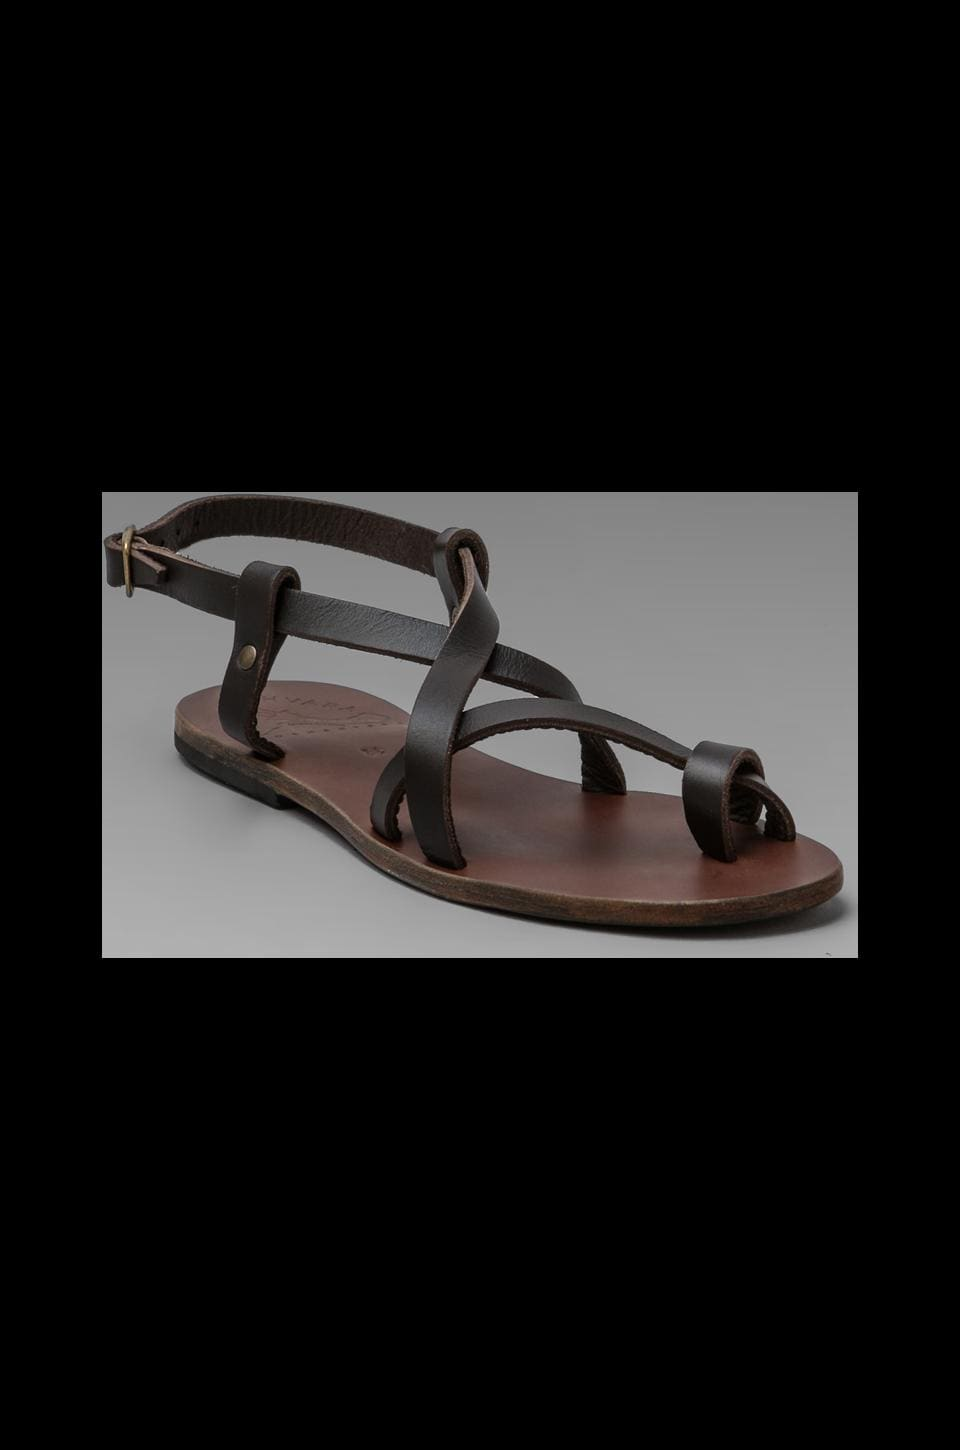 Ishvara Ibiza Sandal in Brown